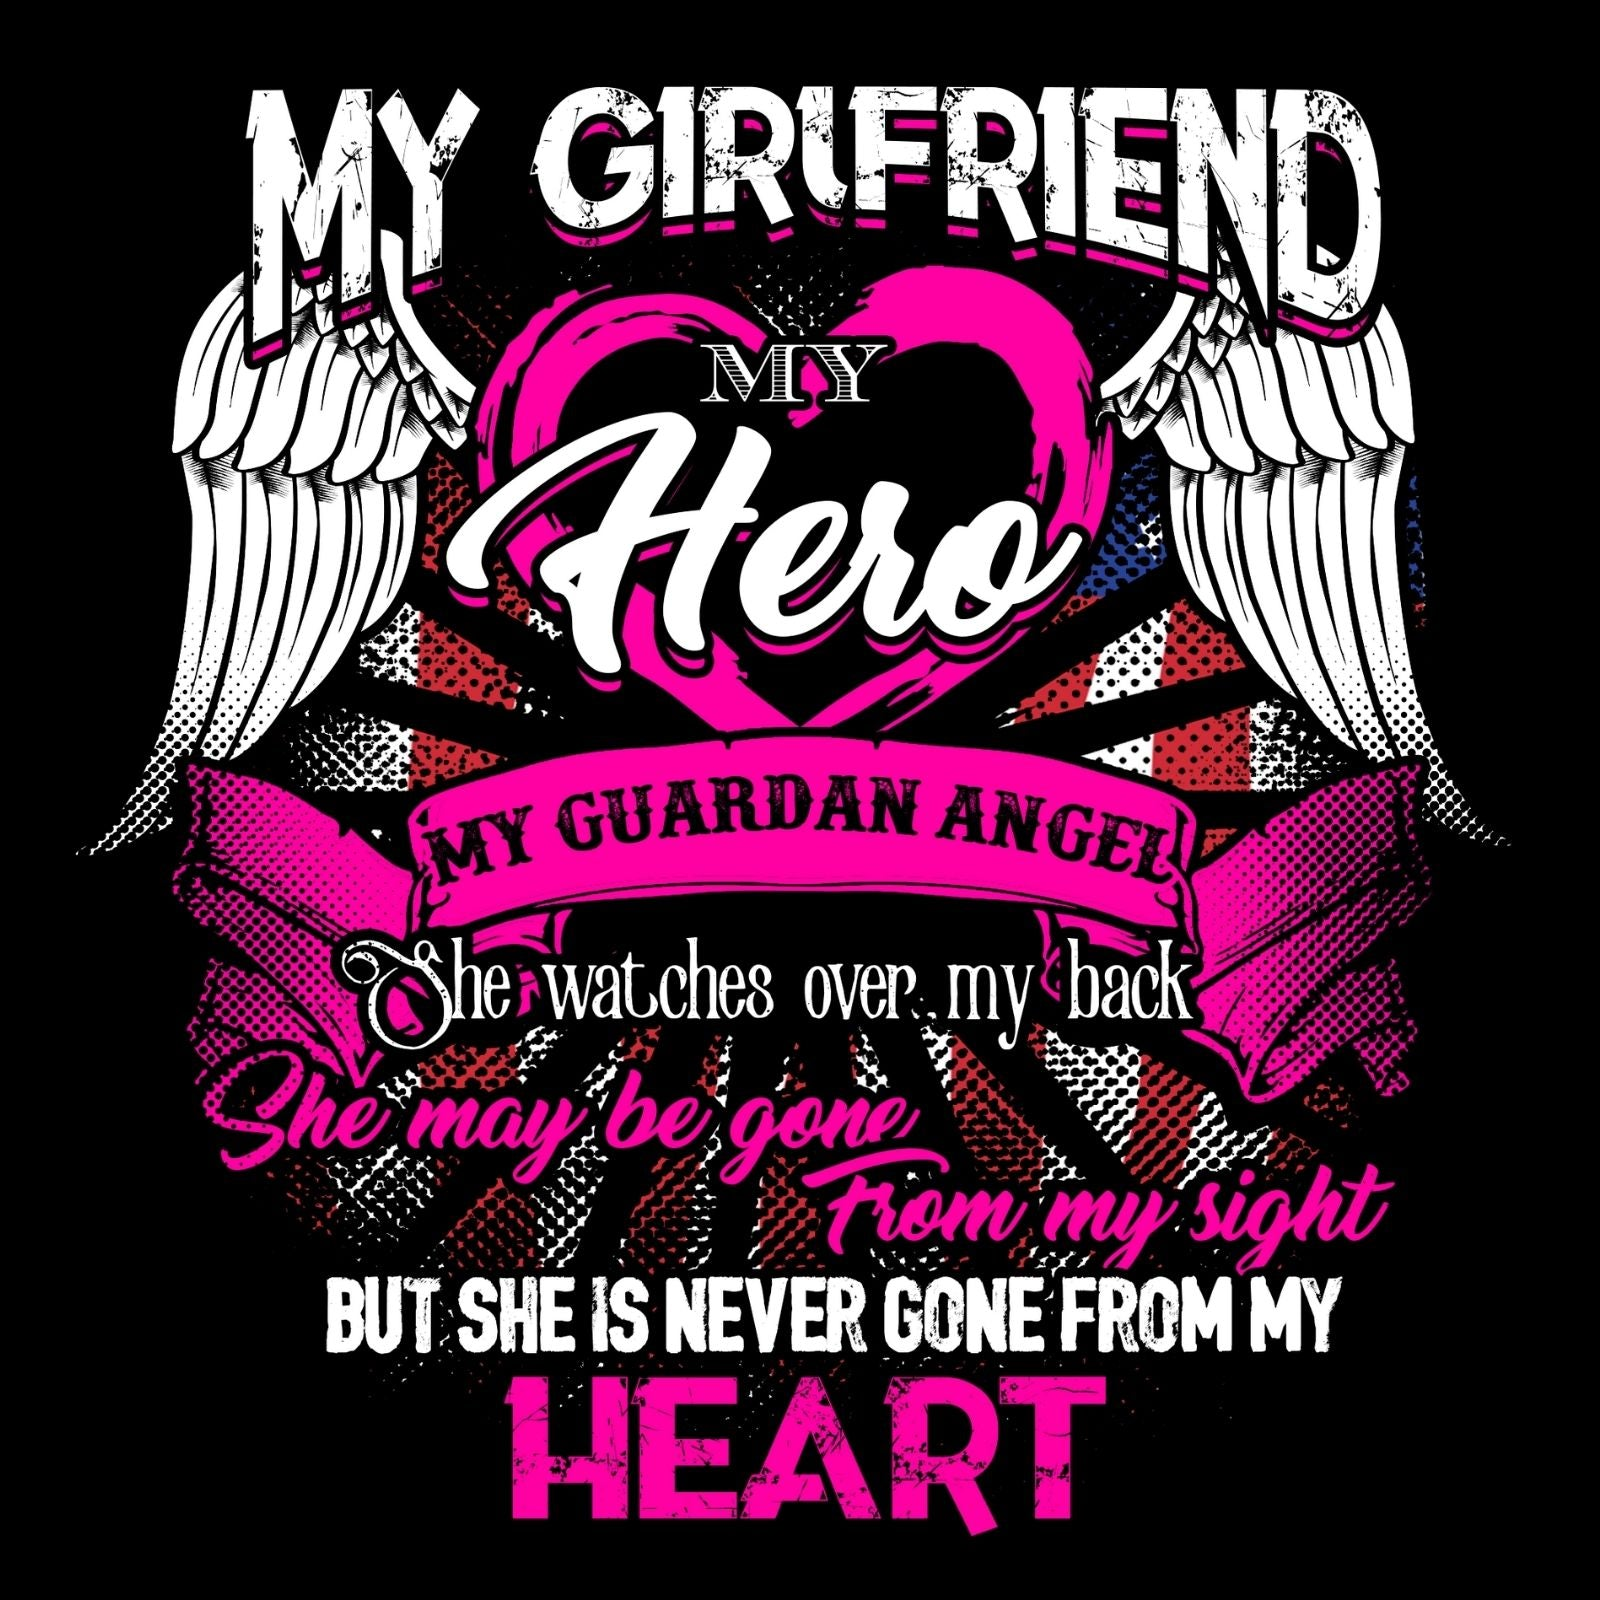 My Girlfriend My Hero My Guardian Angel She Watches Over My Back She Maybe Gone From My Sight But She Is Never Gone From My Heart - Bastard Graphics